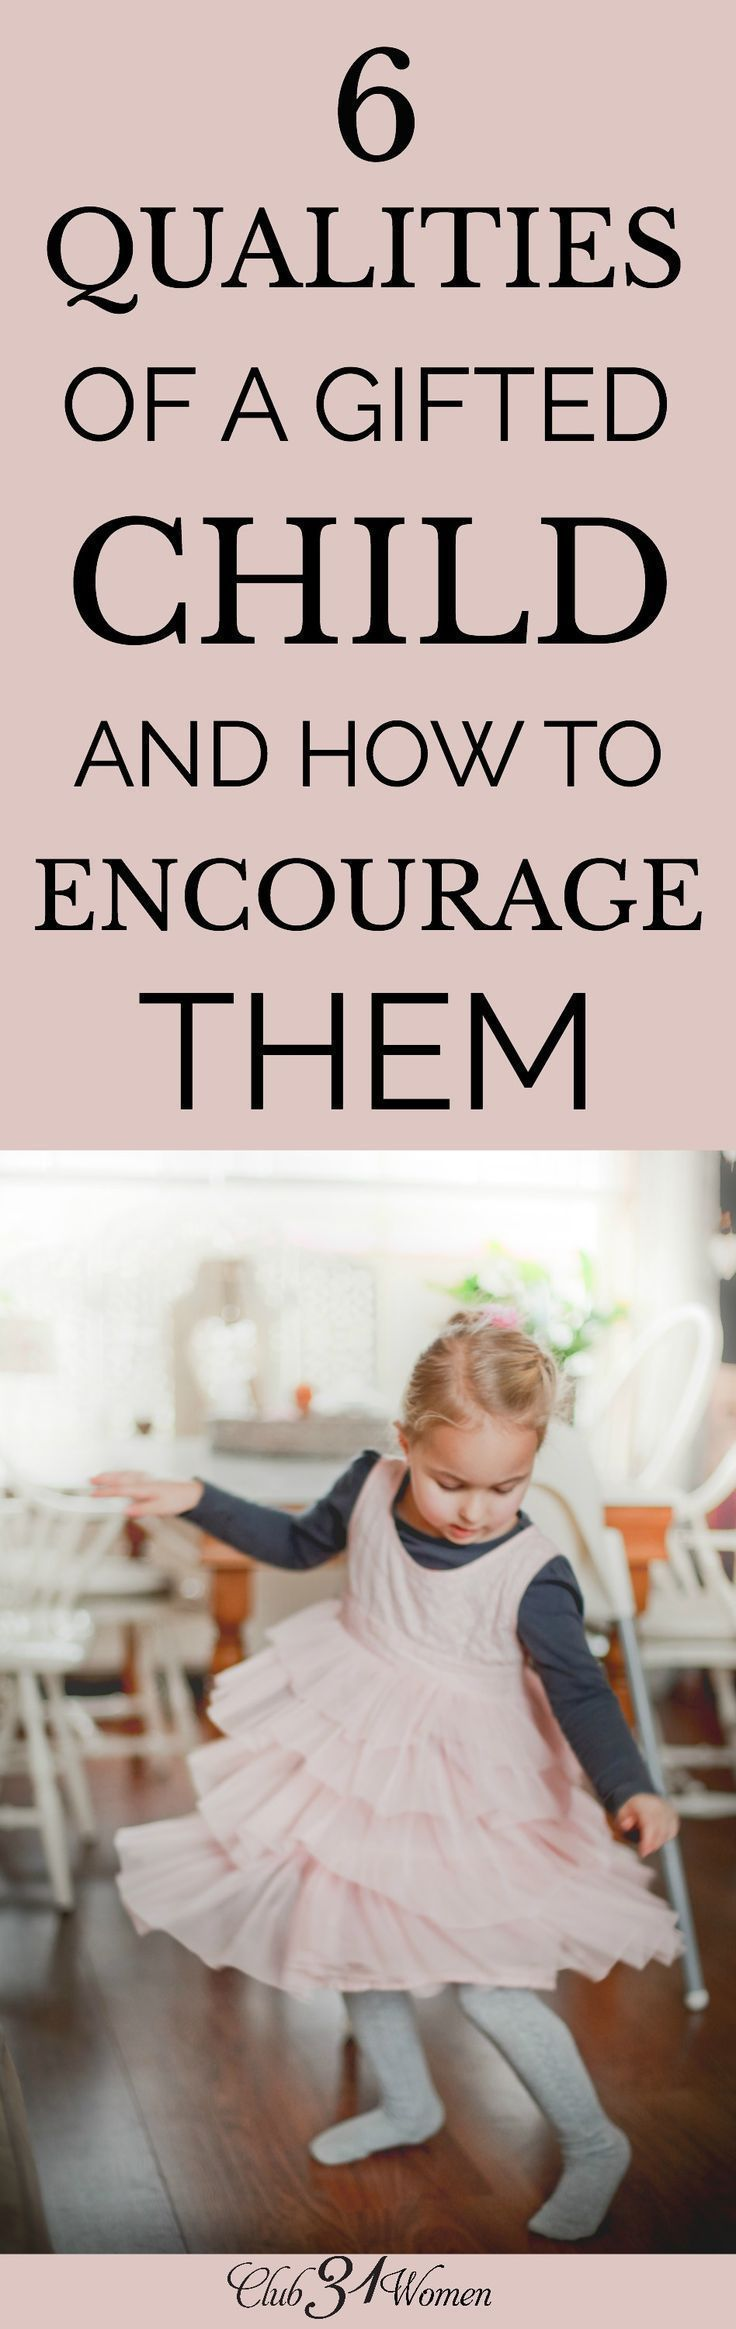 Maybe being the parent of a gifted child can feel overwhelming all the time. But take heart! You can encourage your gifted child in many ways! via /Club31Women/